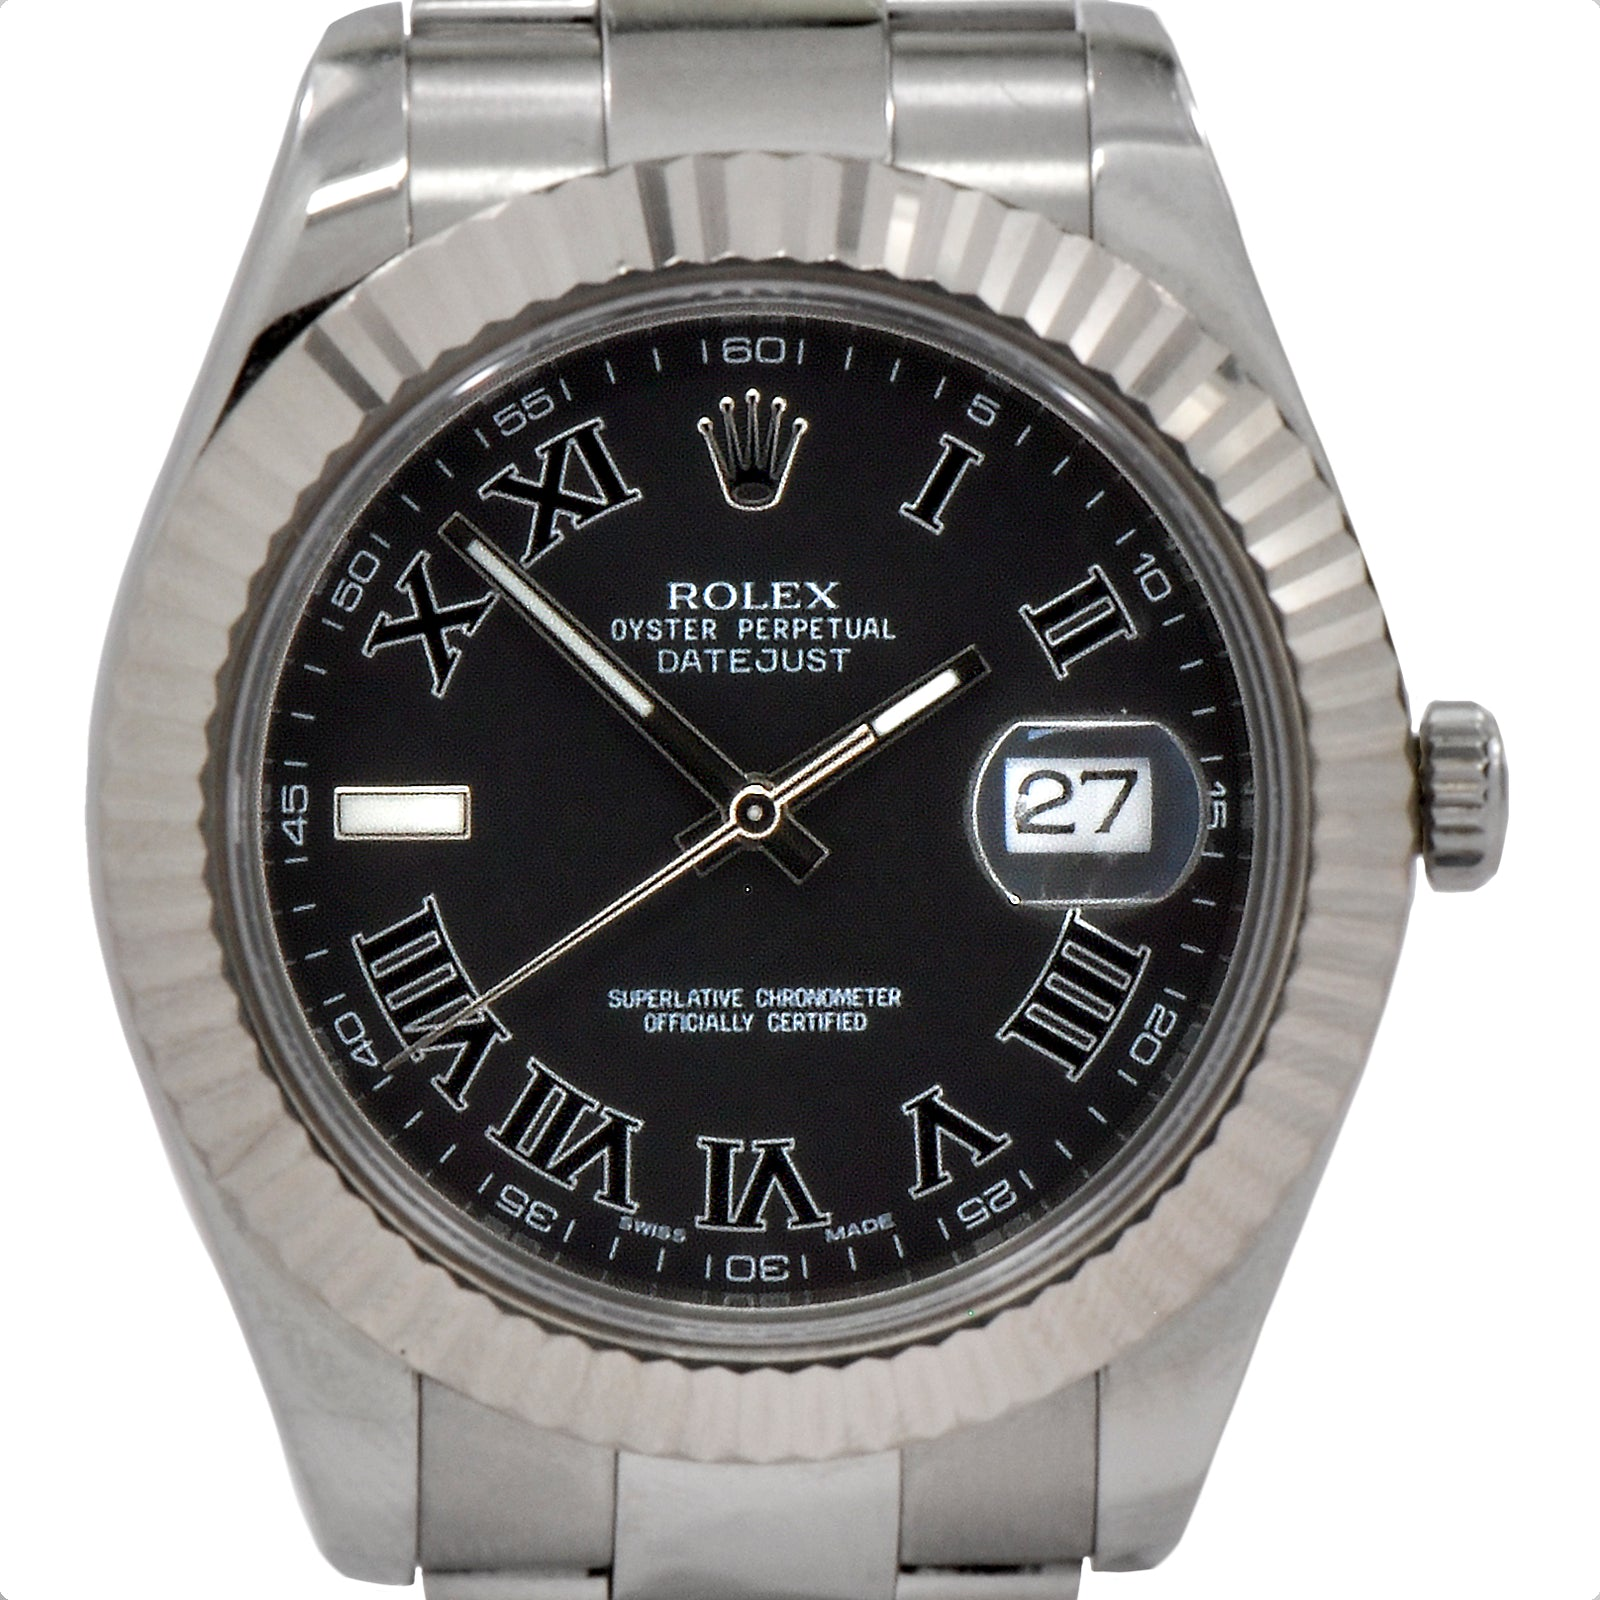 Rolex Datejust II 41mm with Roman Numeral Dial-3